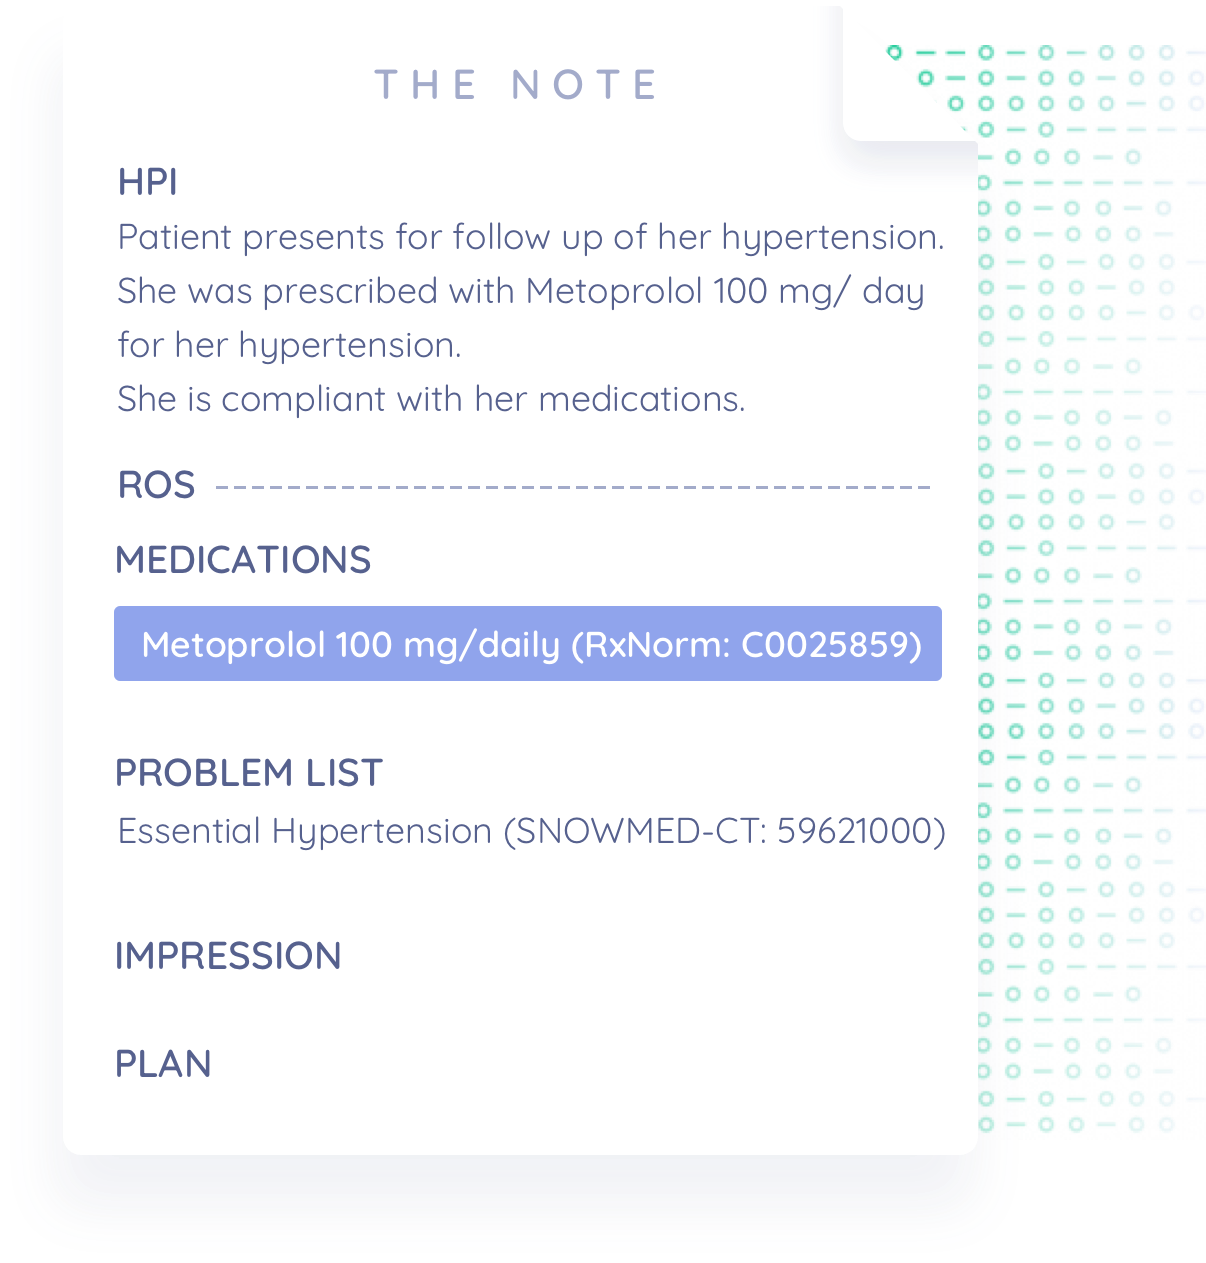 GENERATE THE SOAP NOTE